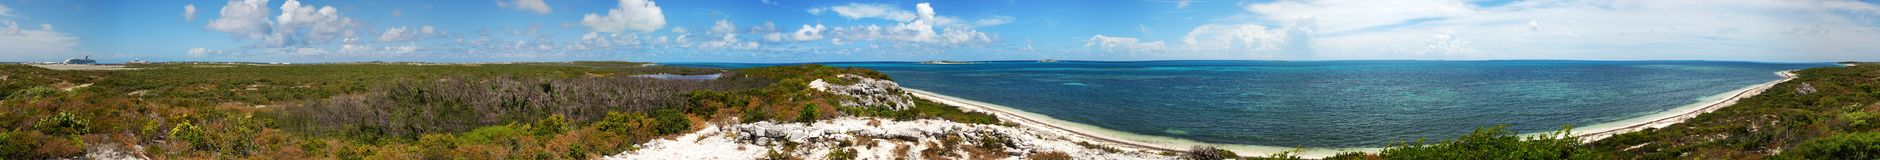 360 degrees Grand Turk Royalty Free Stock Photography